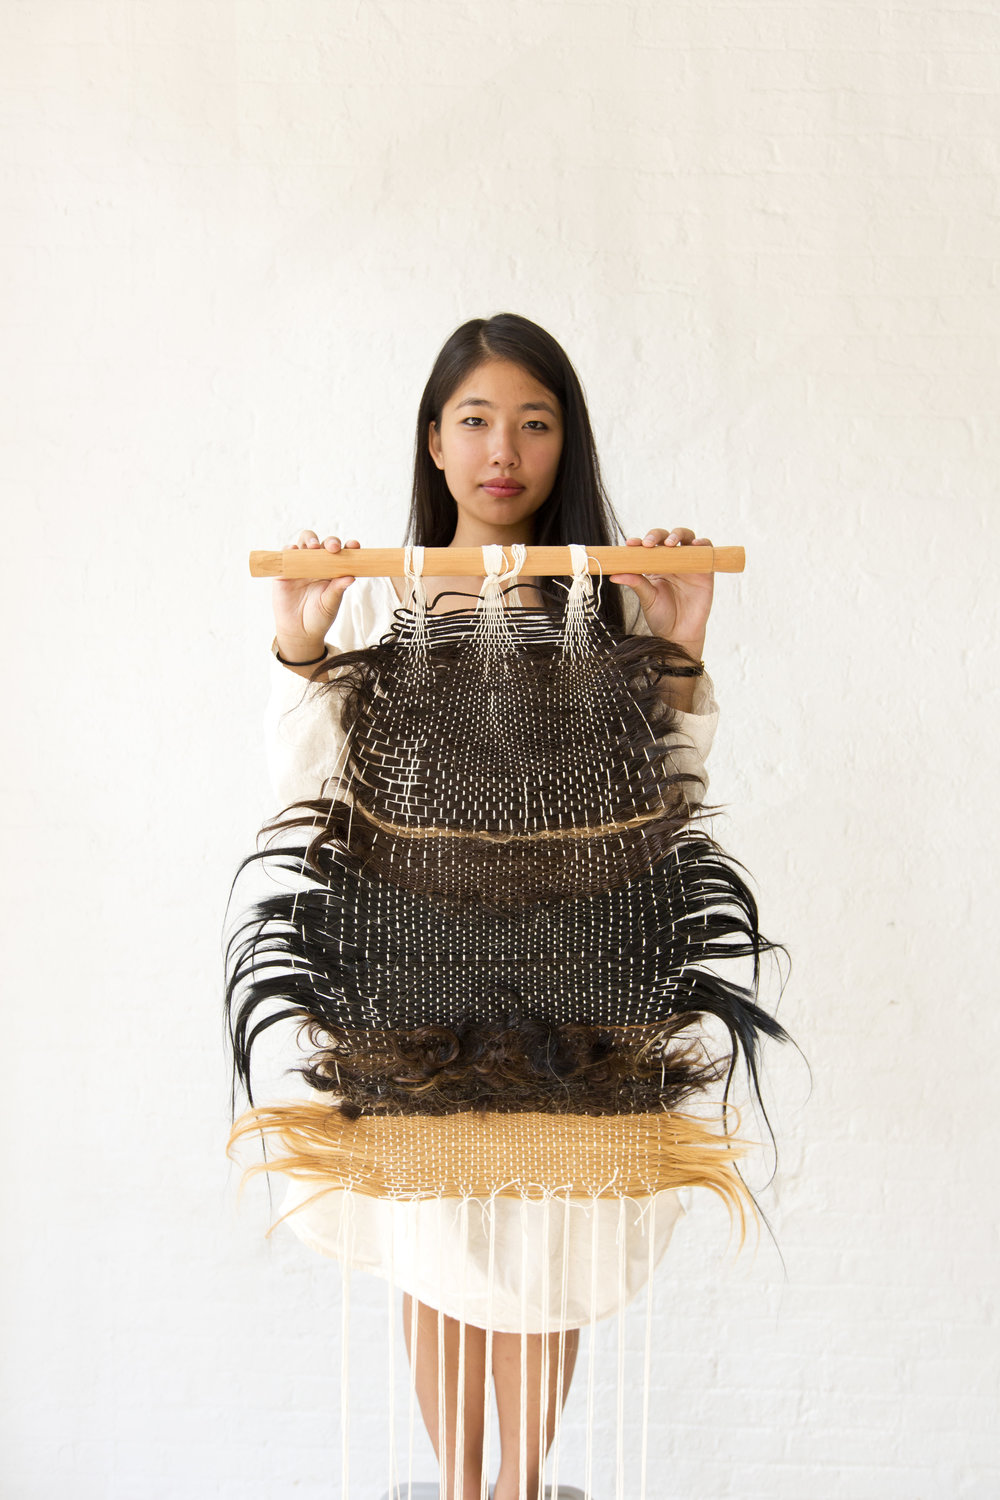 Caption:  Artist holding of a weaving made out of hair donated by 37 people from around the world. The weaving was part of a durational performance called   I hope to Find You at the End of This II   and was woven on a backstrap loom.